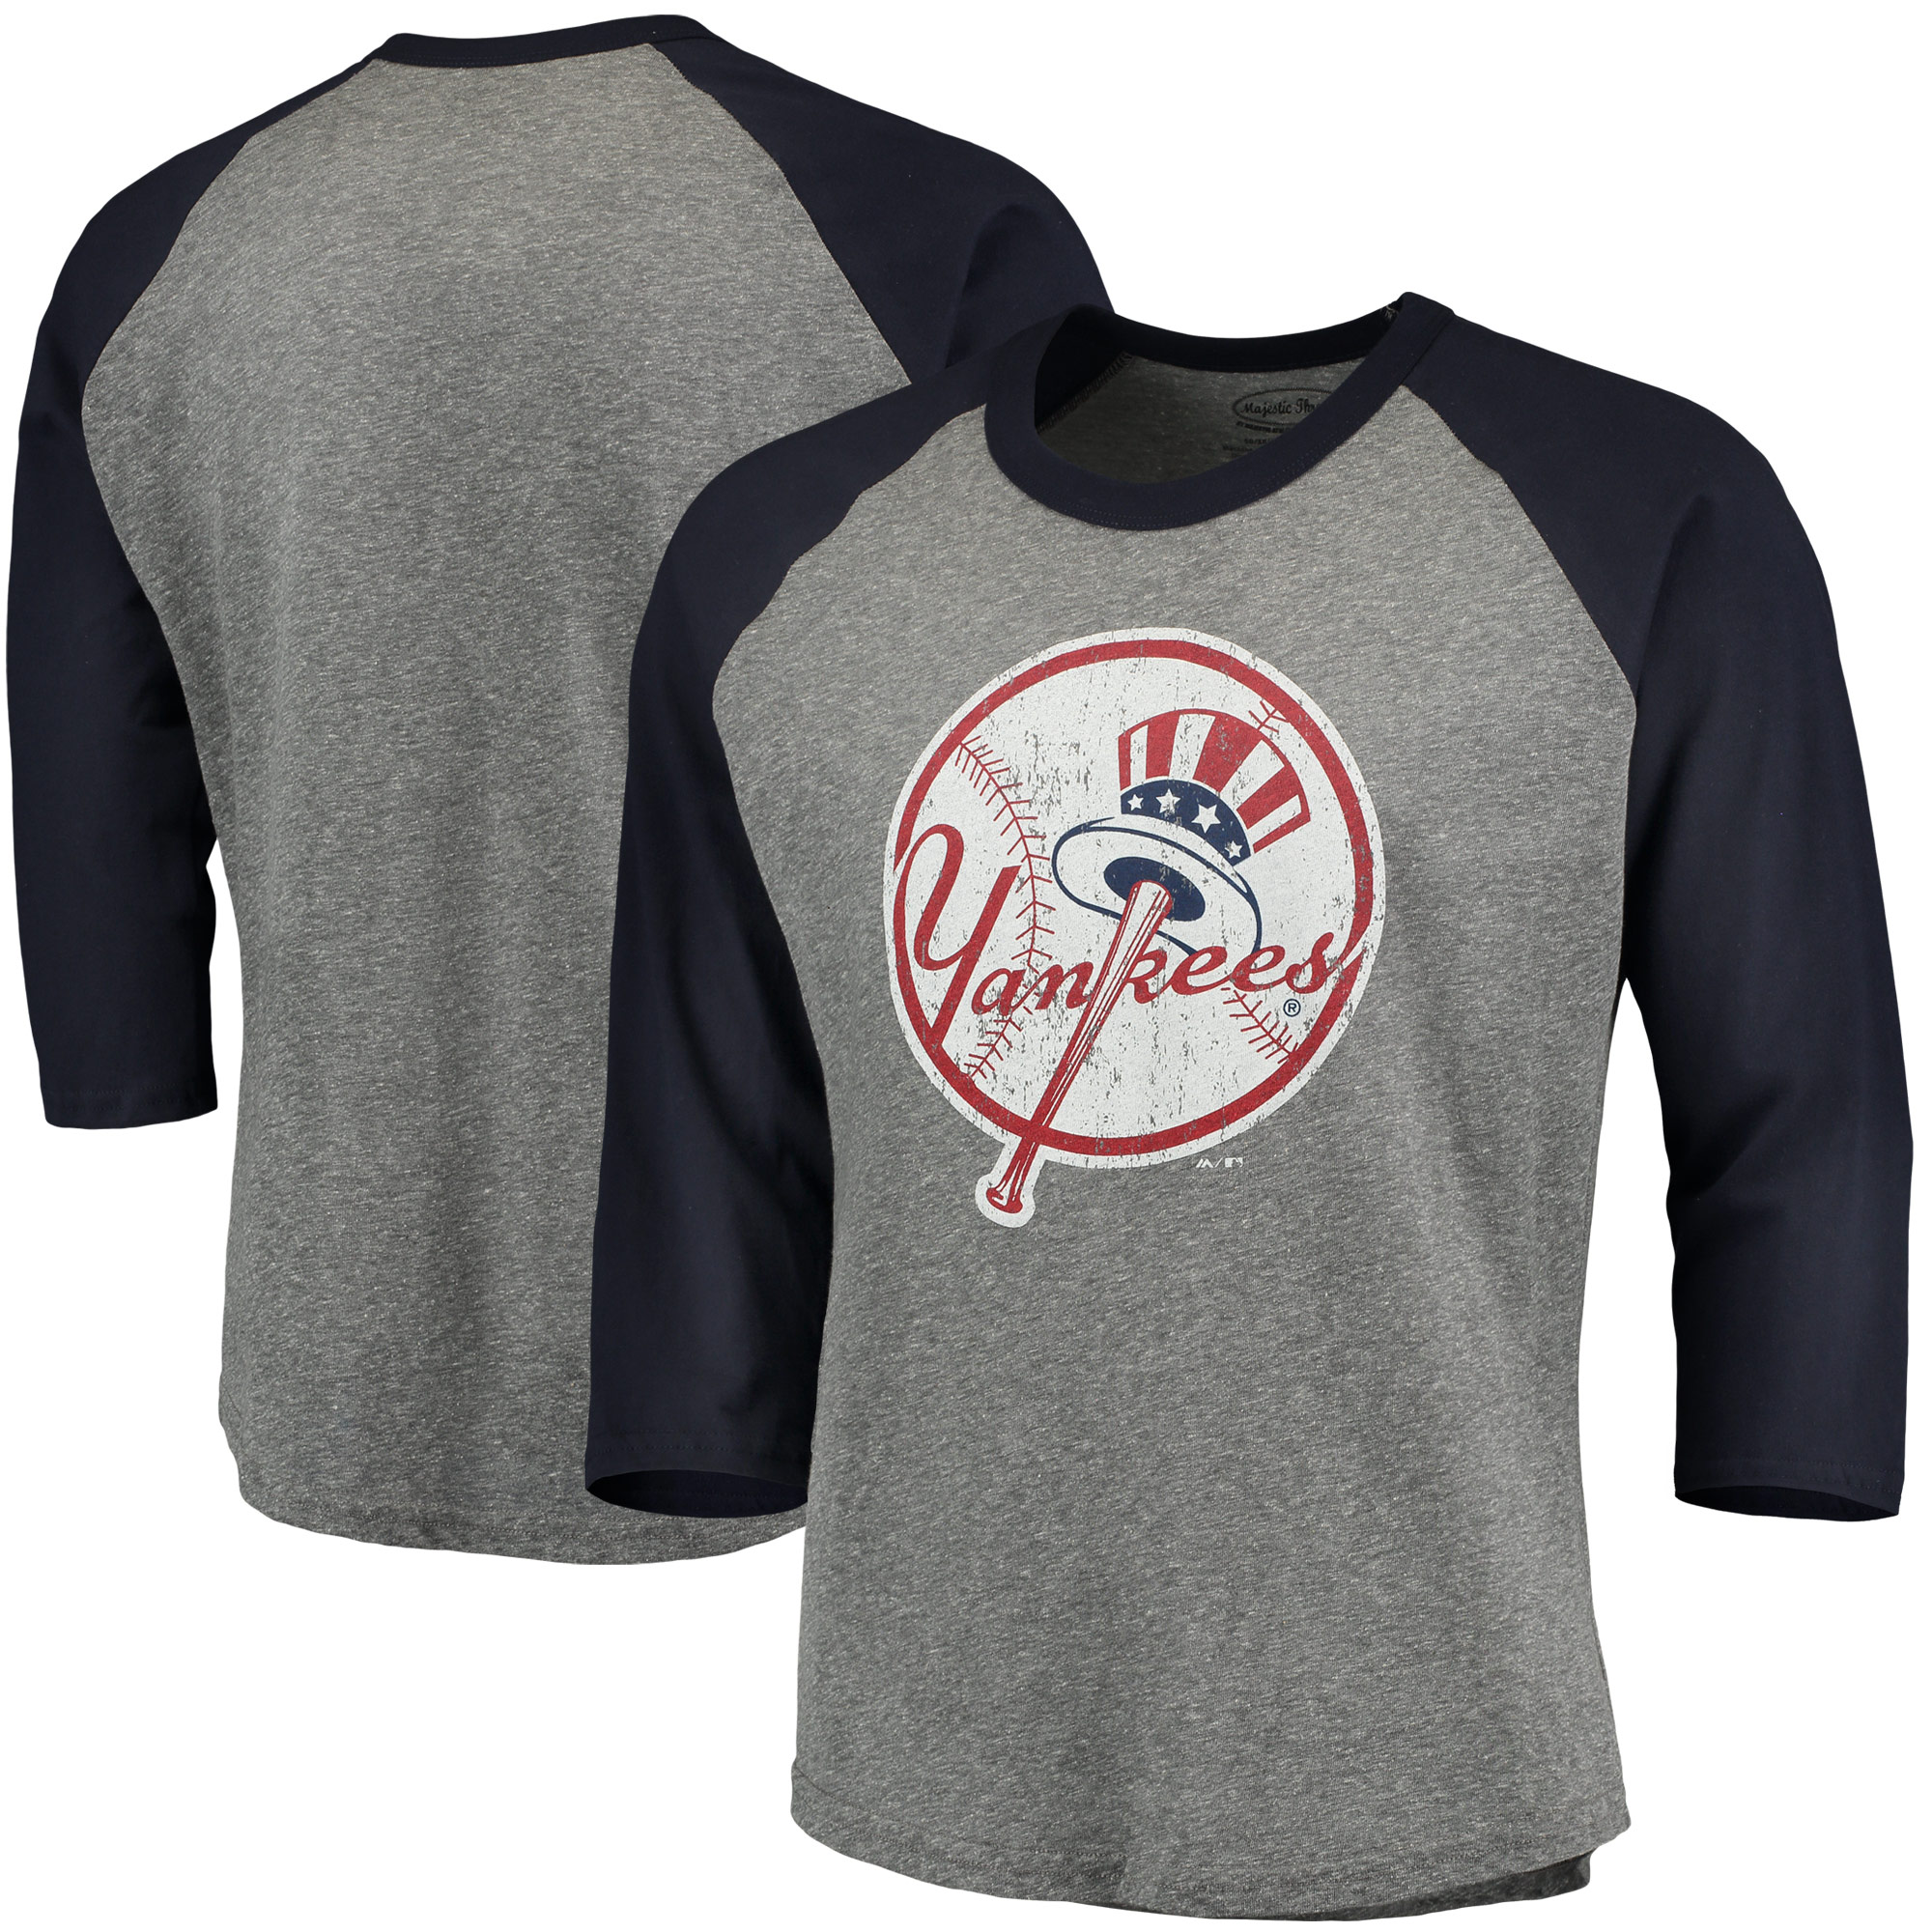 New York Yankees Majestic Threads Cooperstown Collection 3/4-Sleeve Raglan Tri-Blend T-Shirt - Heathered Gray/Navy